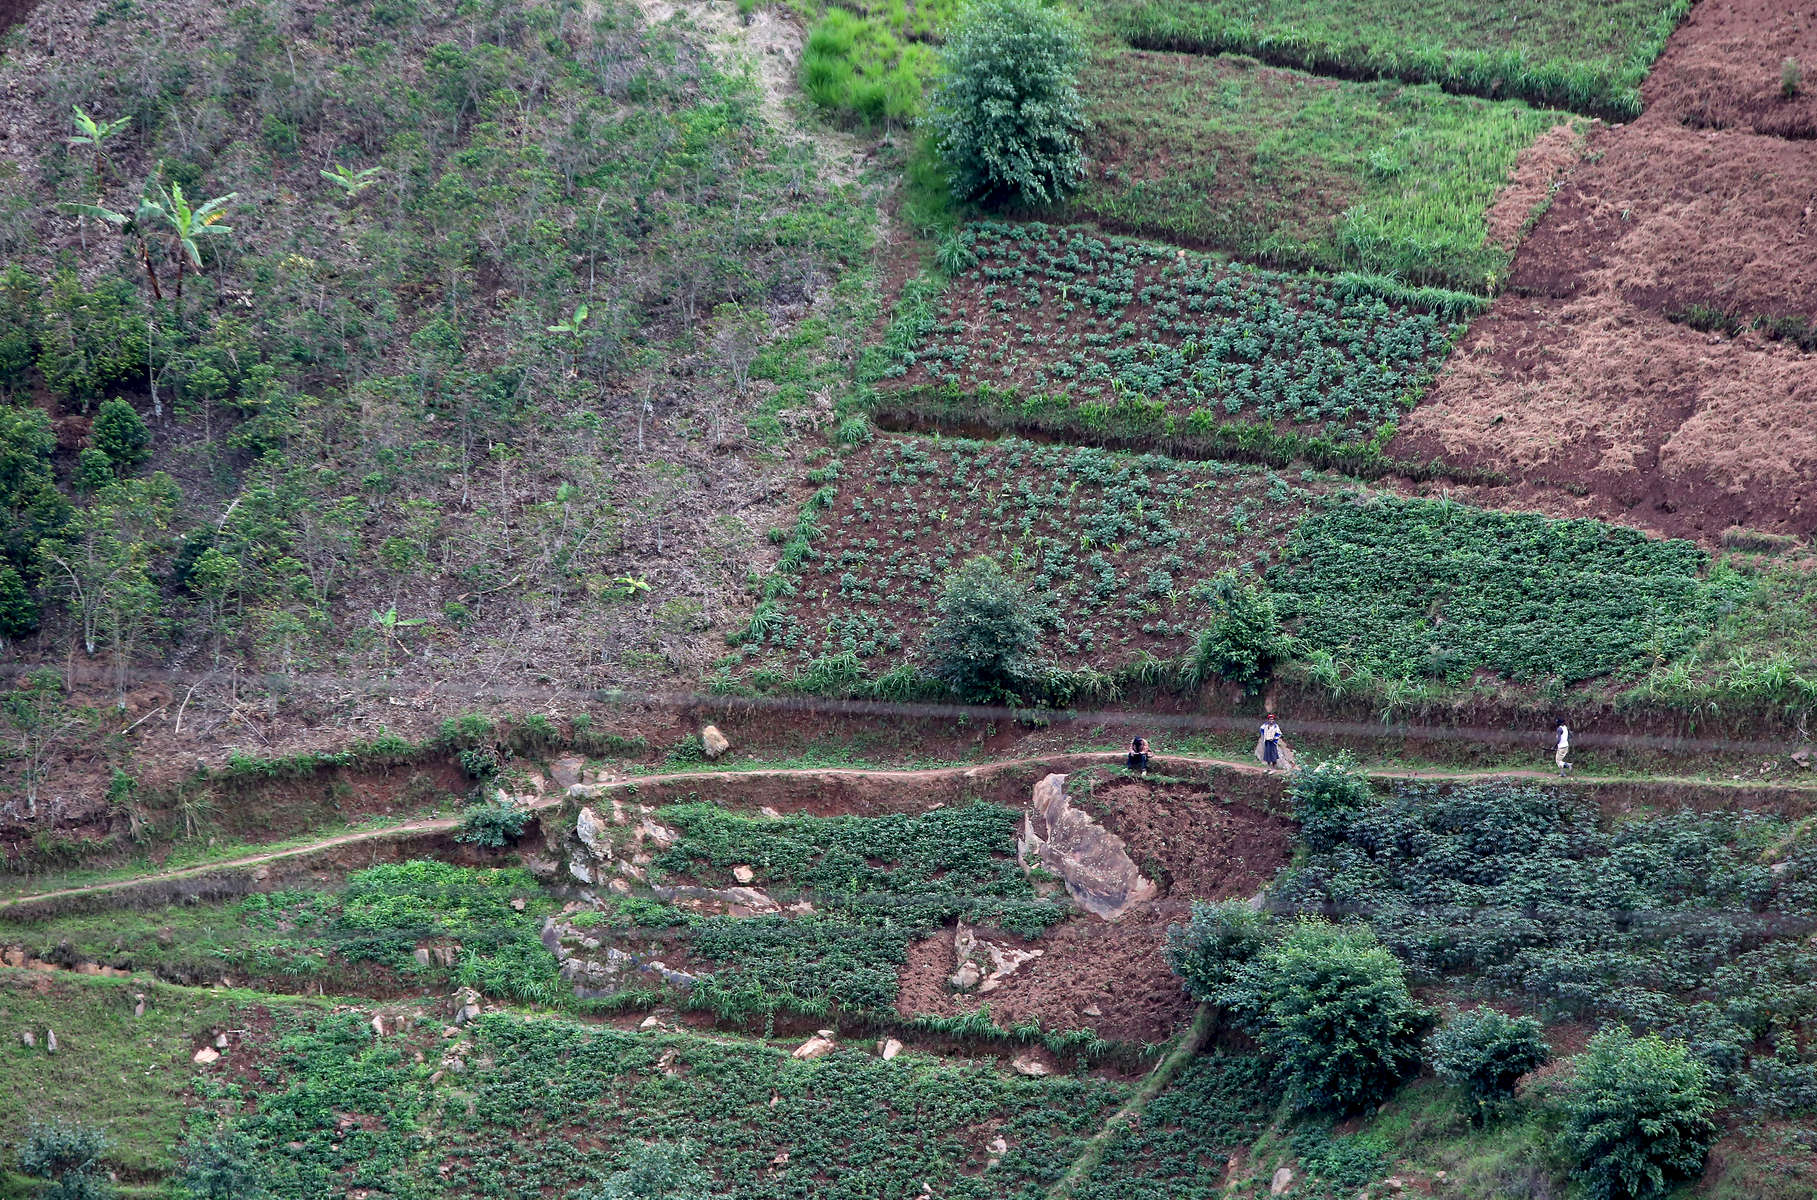 Terrace farming, which helps decrease erosion and surface runoff, is seen on November 15, 2017 in the Rulindo District, Rwanda. Wood gathering causes much of the deforestation and soil erosion in the country. Nearly half of all Rwandans live in poverty, relying on small-scale farming for survival without gas or electricity. With so many women and children spending hours of the day foraging for wood used for cooking and light, often damaging their eyes, lungs, the forests and atmosphere, a little inventiveness helps. Enter cow and enter pig — not just as a source of food, but also the heat needed to cook it. Or more specifically, their poo — the fuel fed to a biogas digester, a tank that coverts organic waste into methane. Photographs by: Yana Paskova